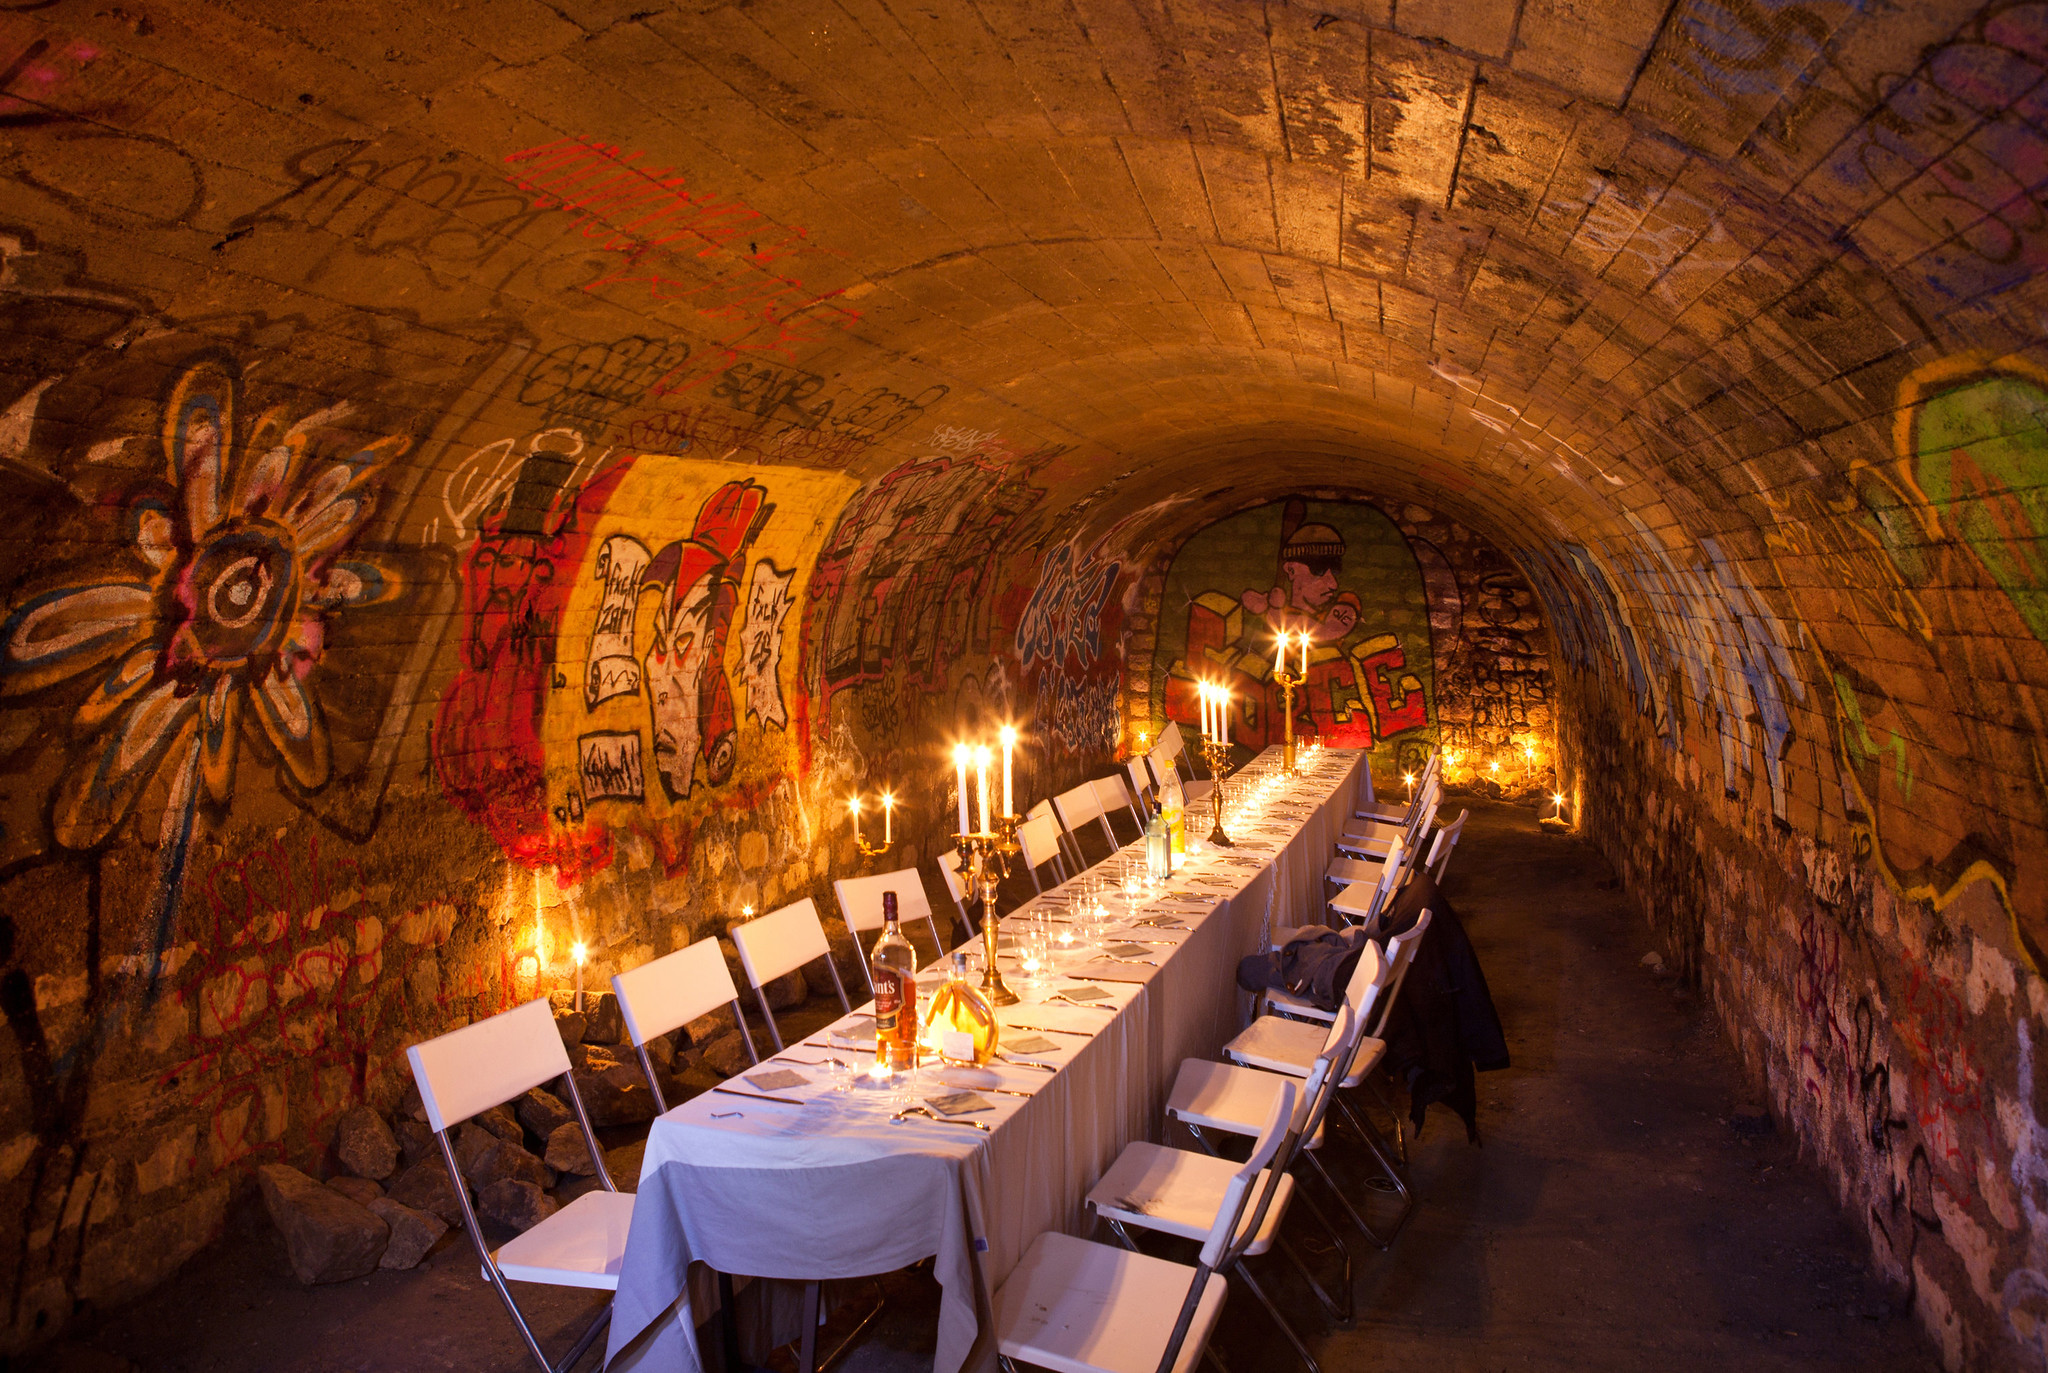 A fancy dinner in the forbidden Catacombs of Paris